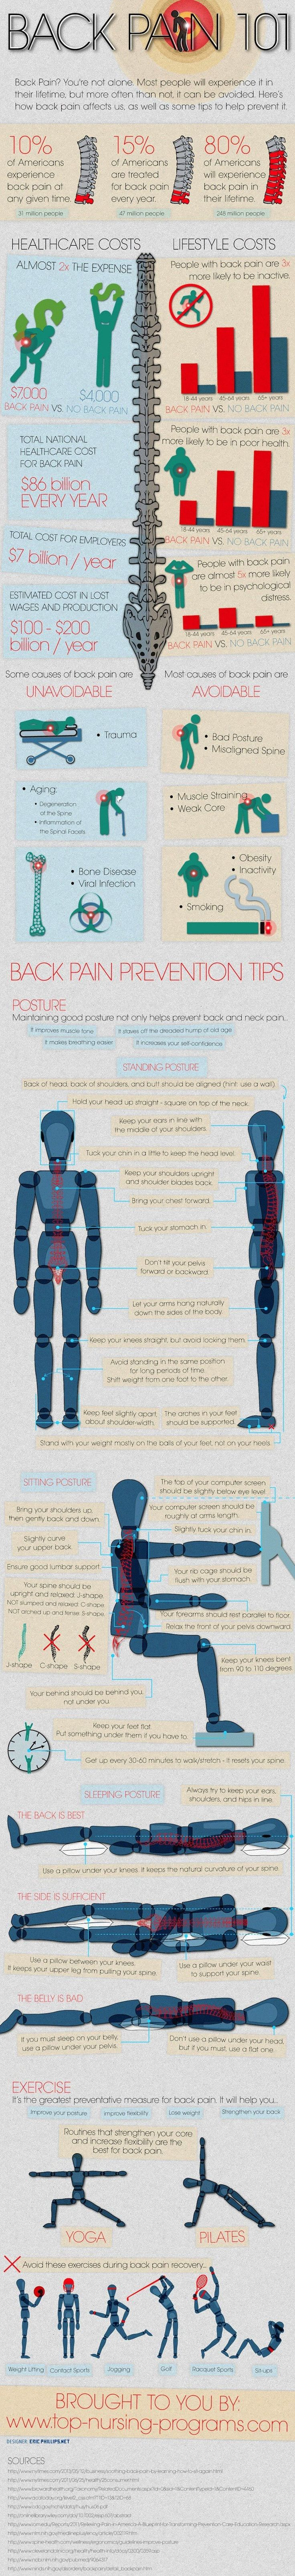 Everything You Need To Know About Back Pain (Infographic)